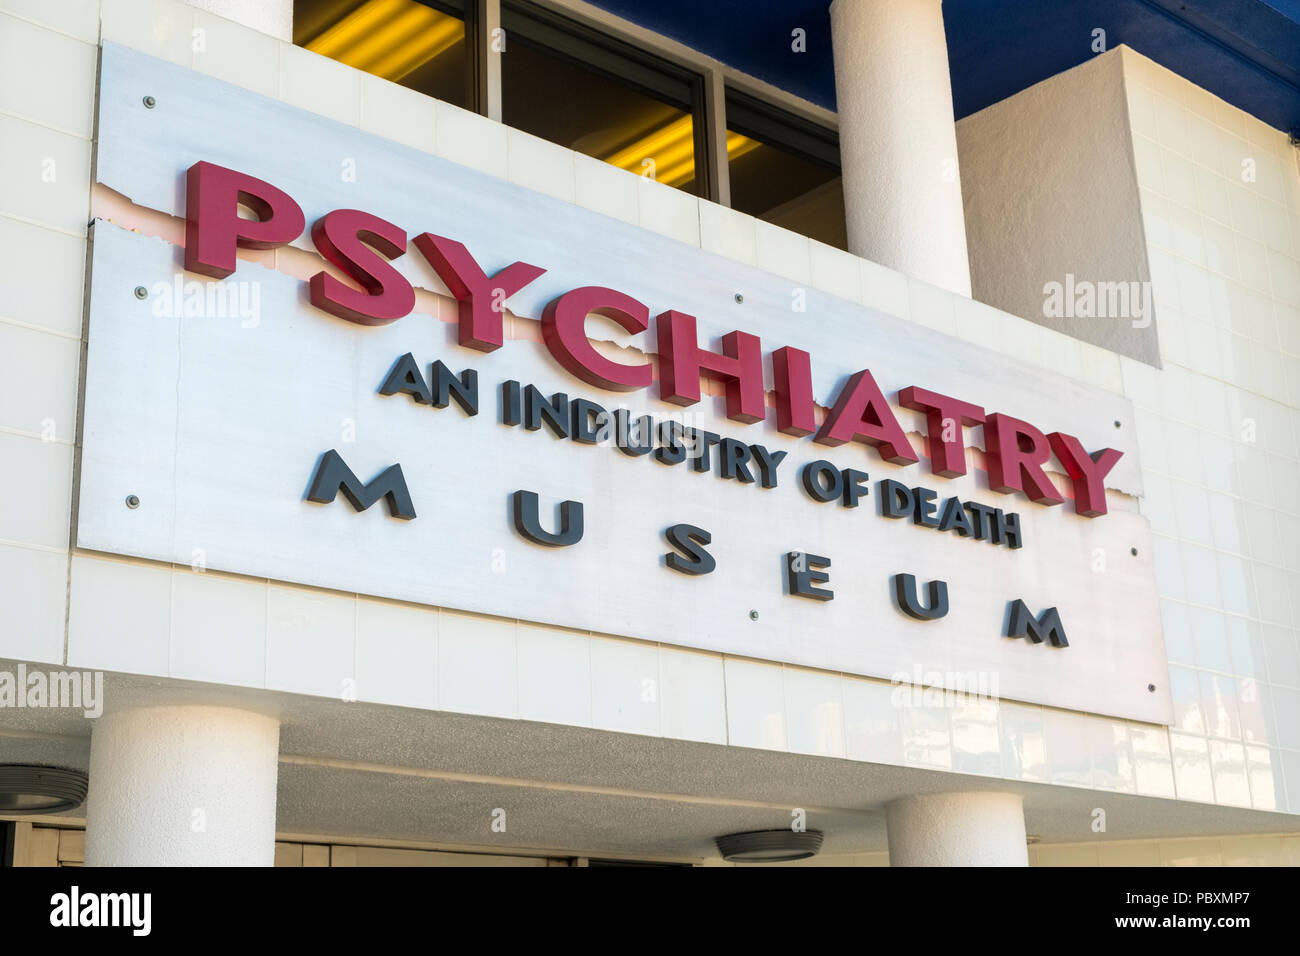 Psychiatry an Industry of Death museum, Hollywood, Los Angeles, LA, California, CA,USA, logo sign - Stock Image